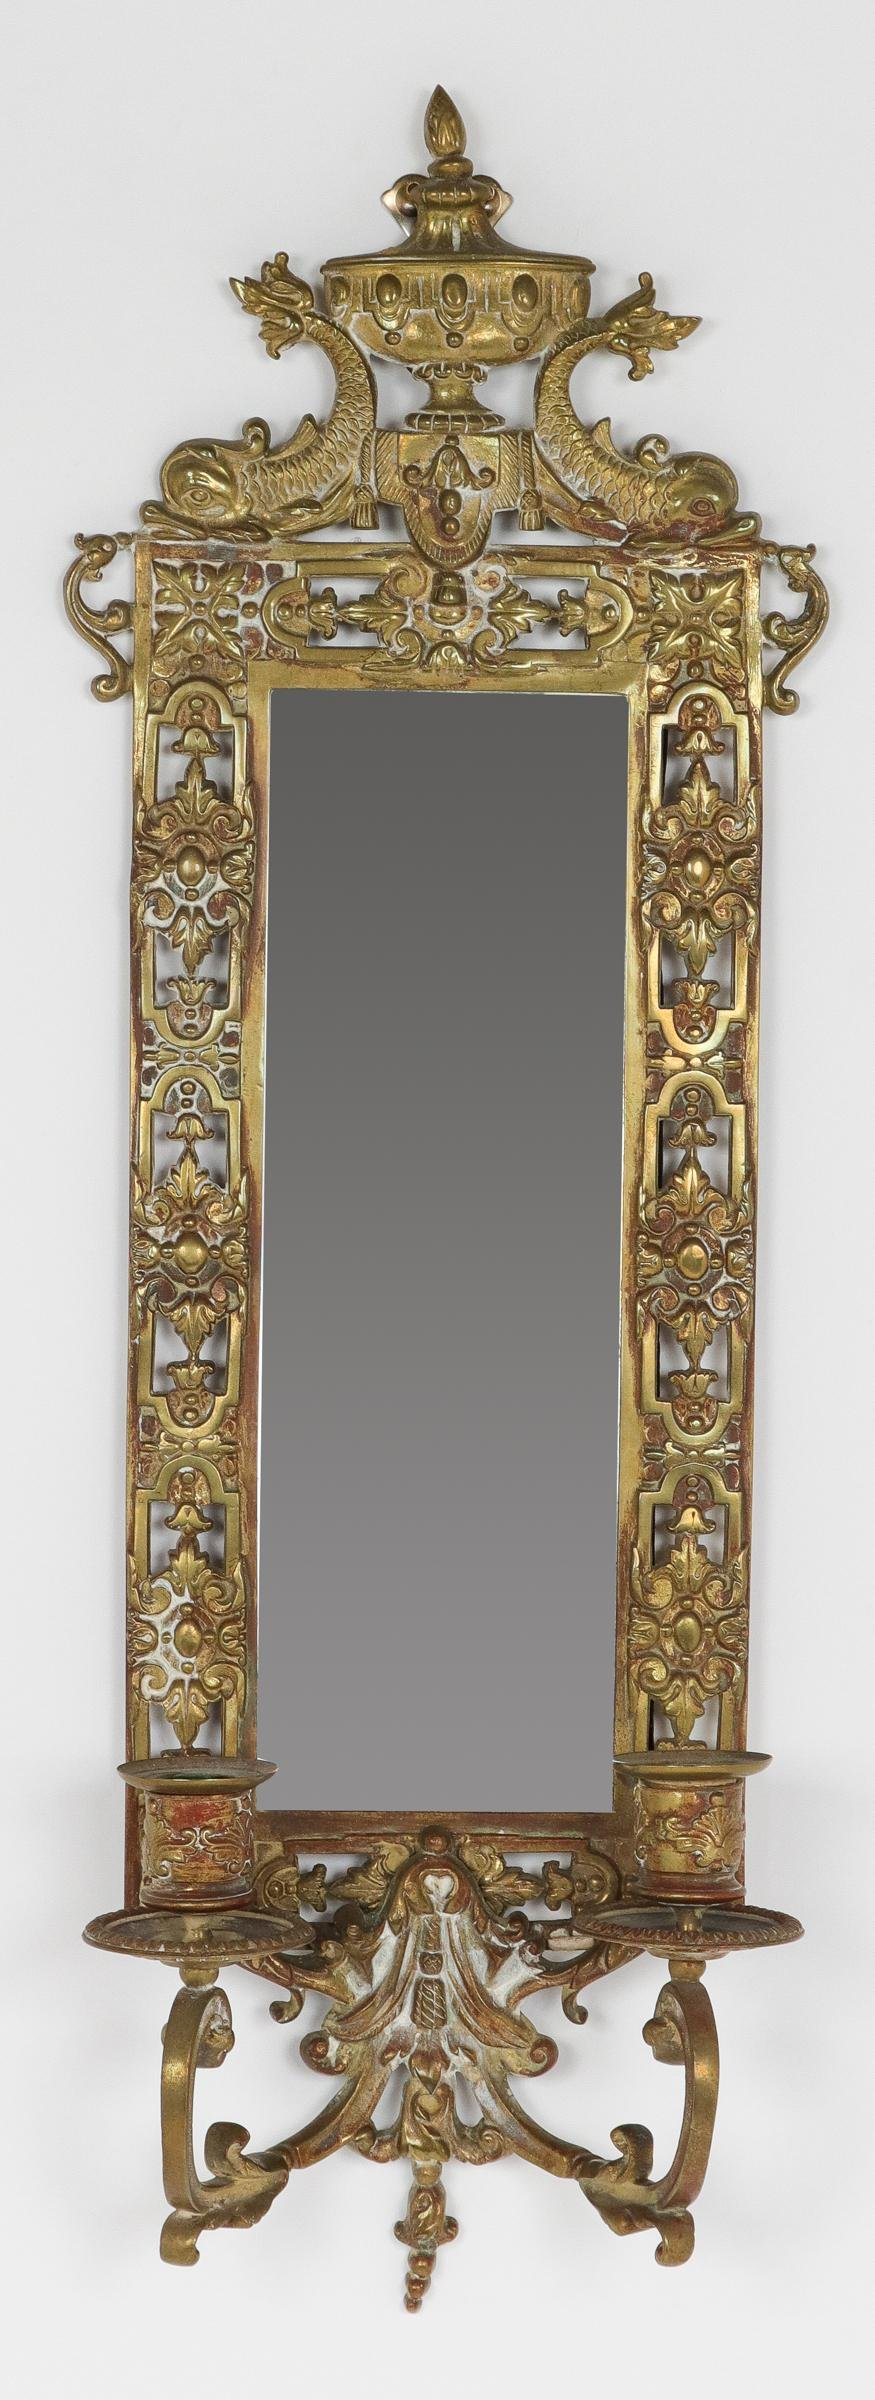 Bradley & Hubbard Style Mirrored Brass Wall Sconce